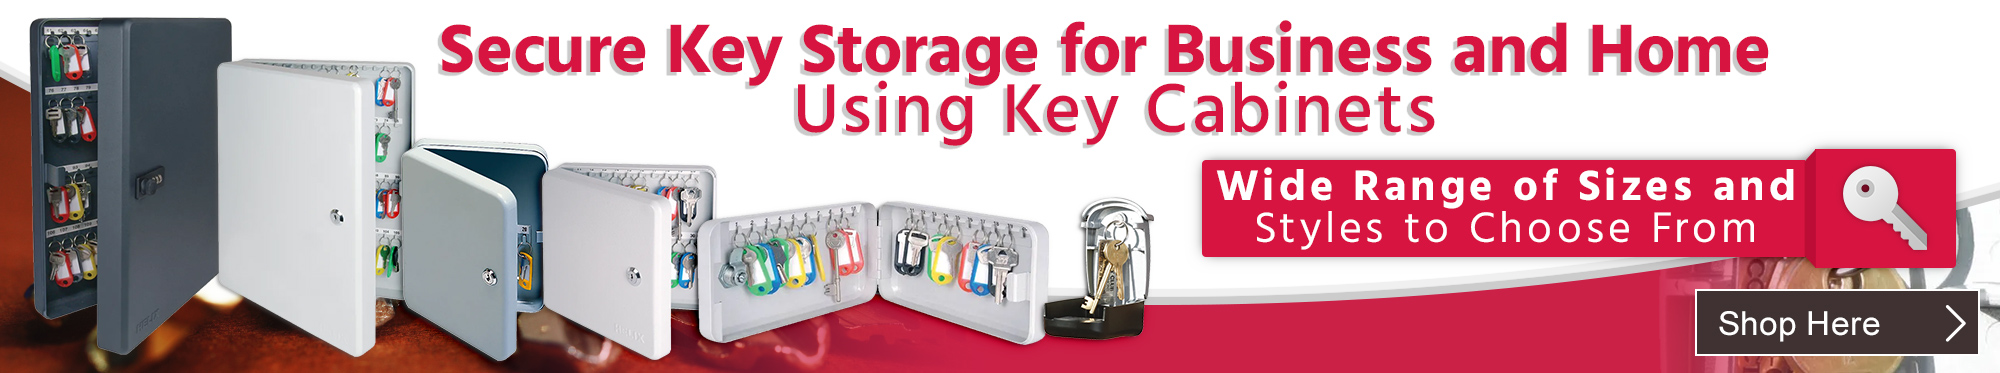 Secure Key Storage for Business and Home Using Key Cabinets